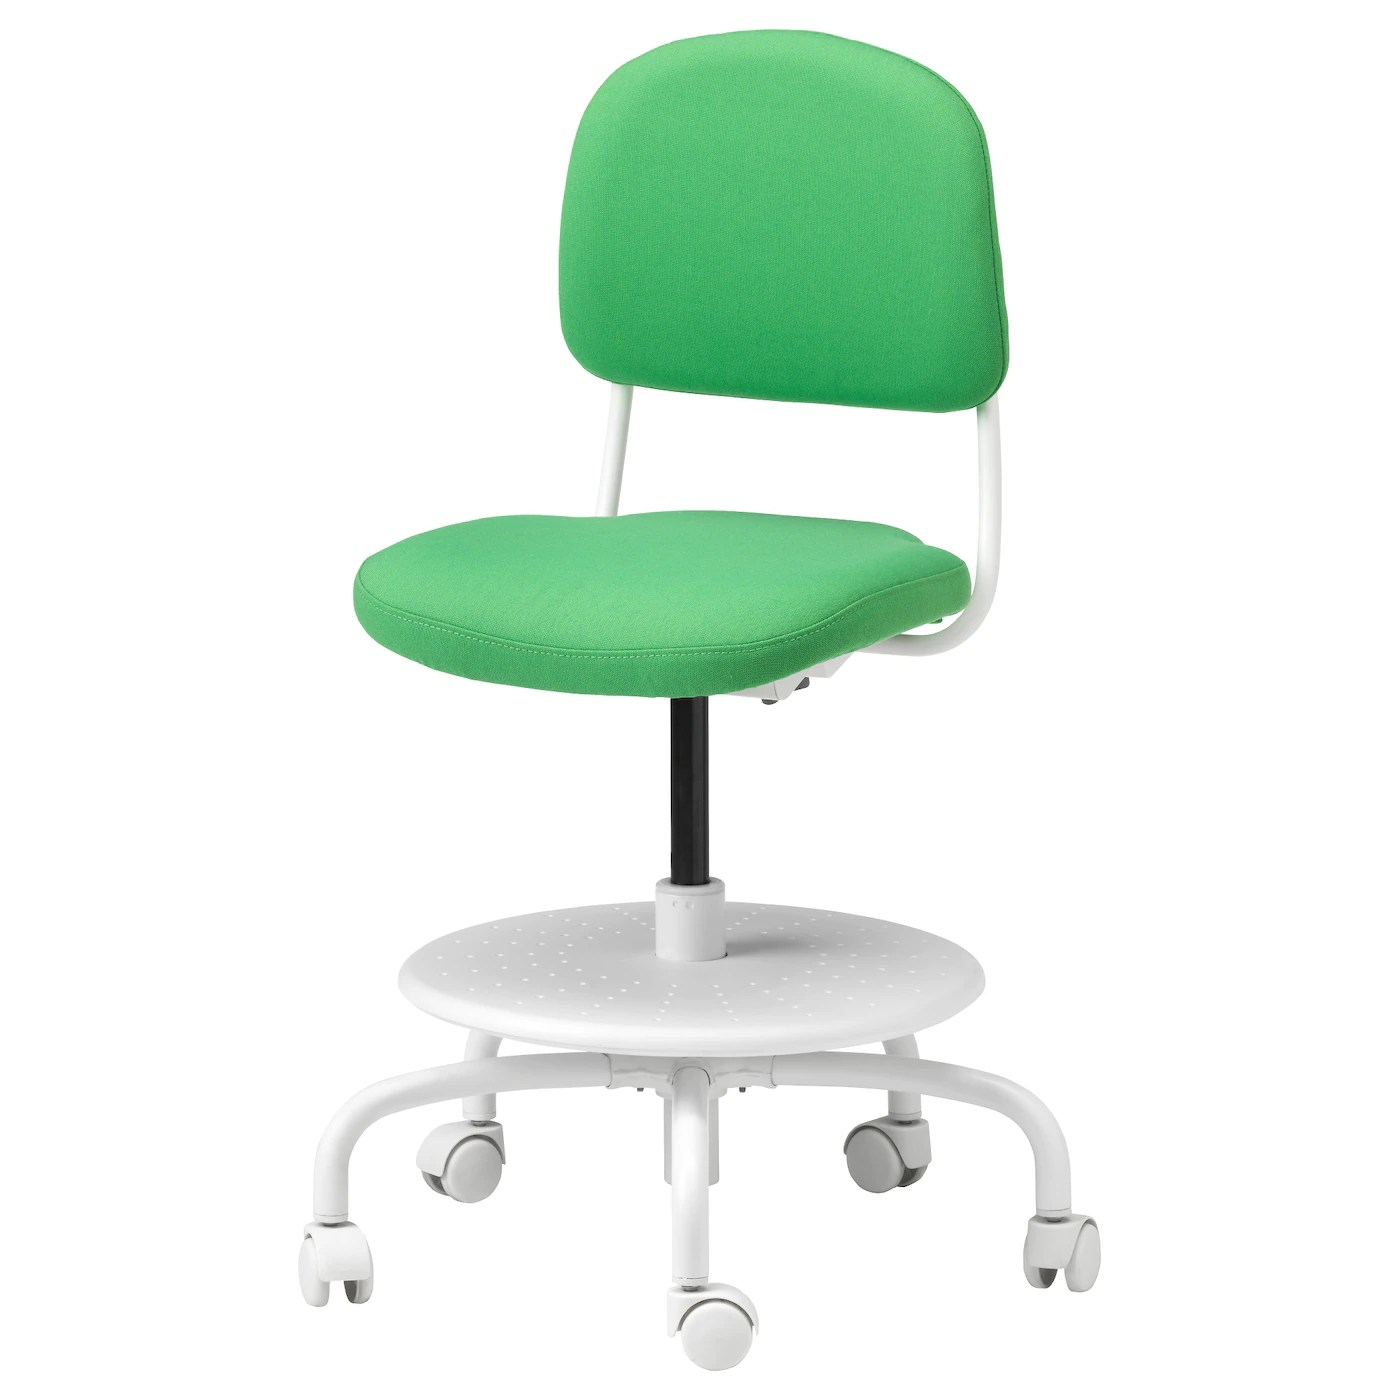 chairs for children green kitchen uk vimund 39s desk chair vissle bright ikea